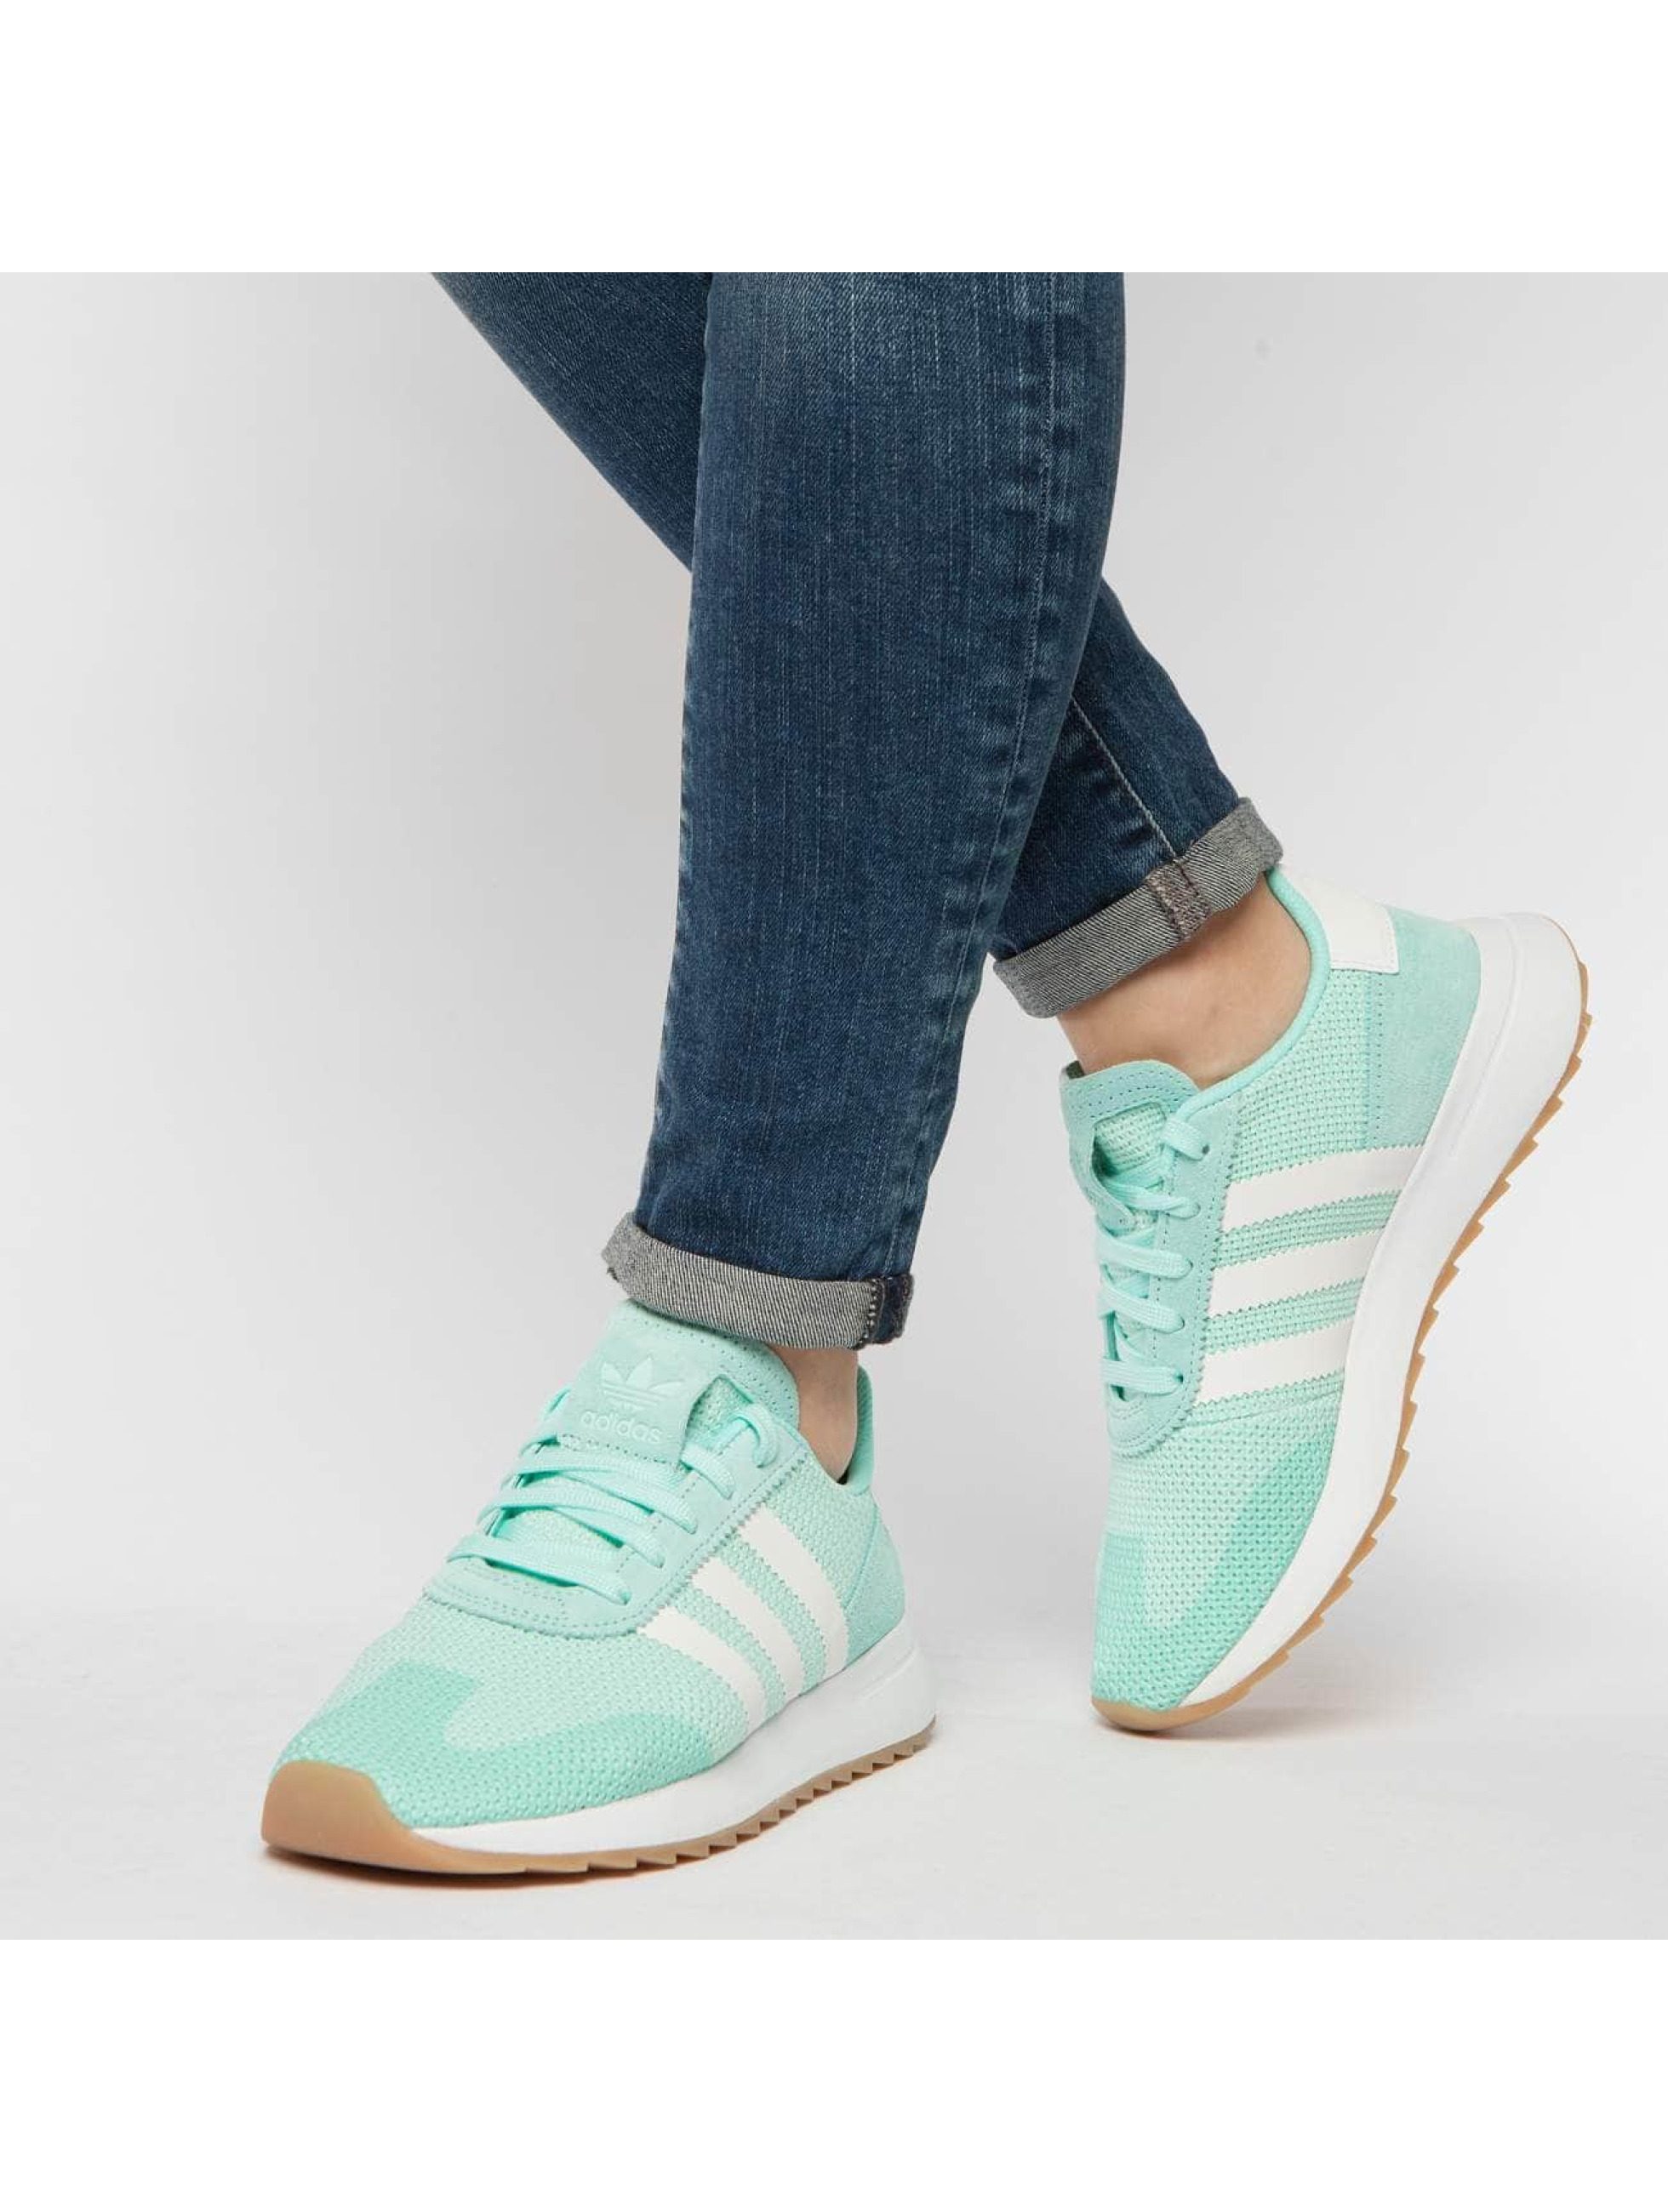 adidas originals Tennarit Flashback Runner turkoosi